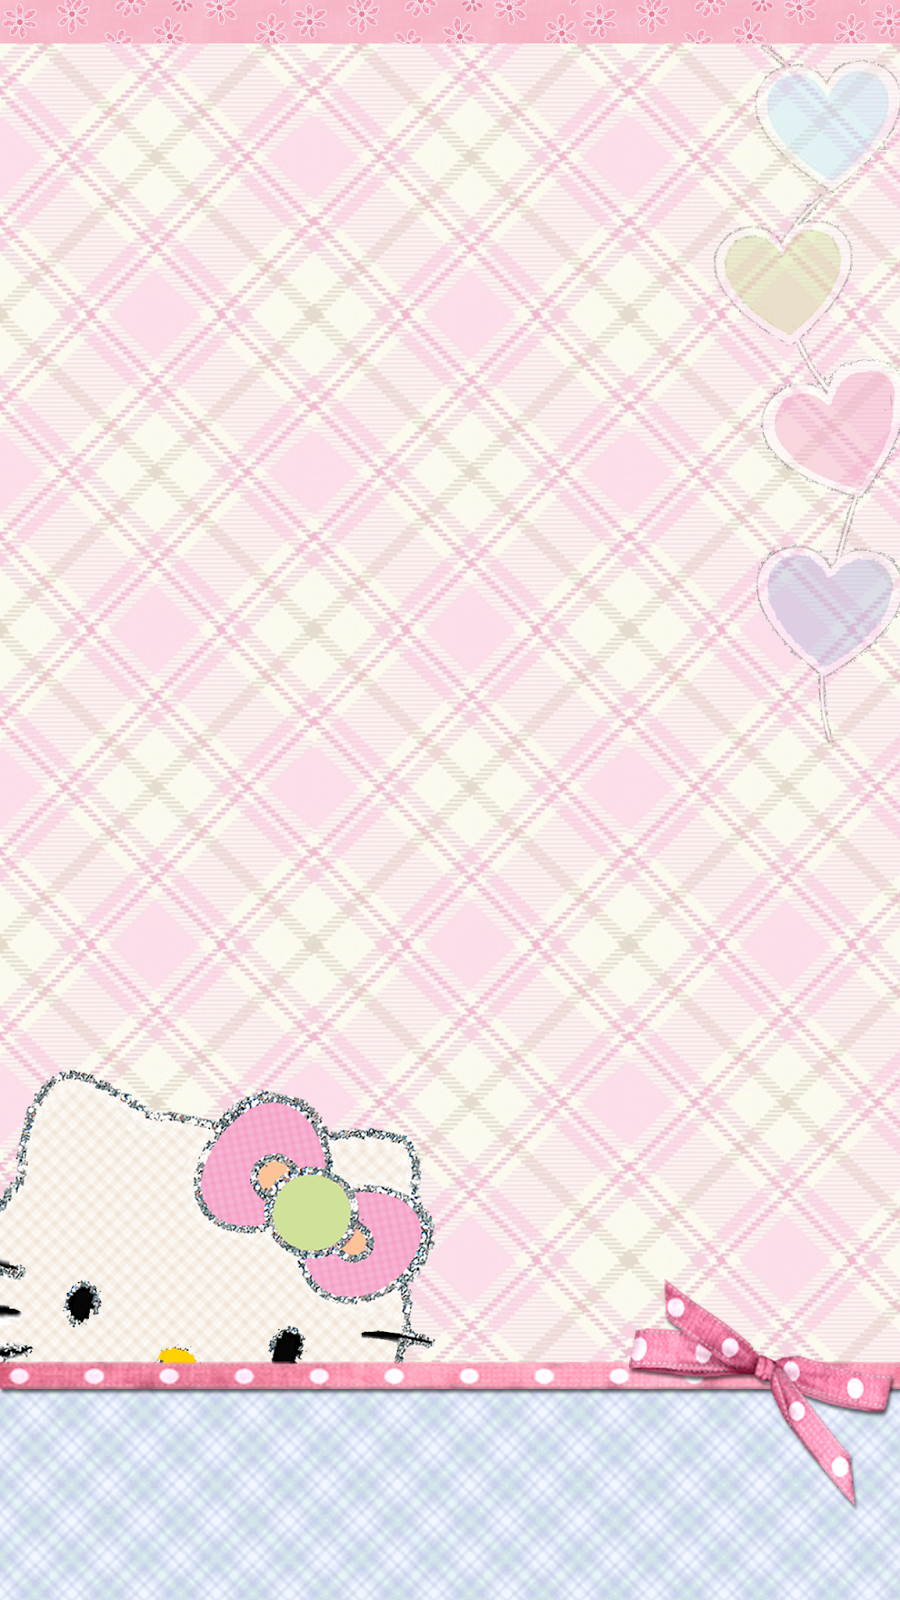 Wonderful Wallpaper Hello Kitty Love - pastel%2BHK%2Bfrost2  Snapshot_807385.png